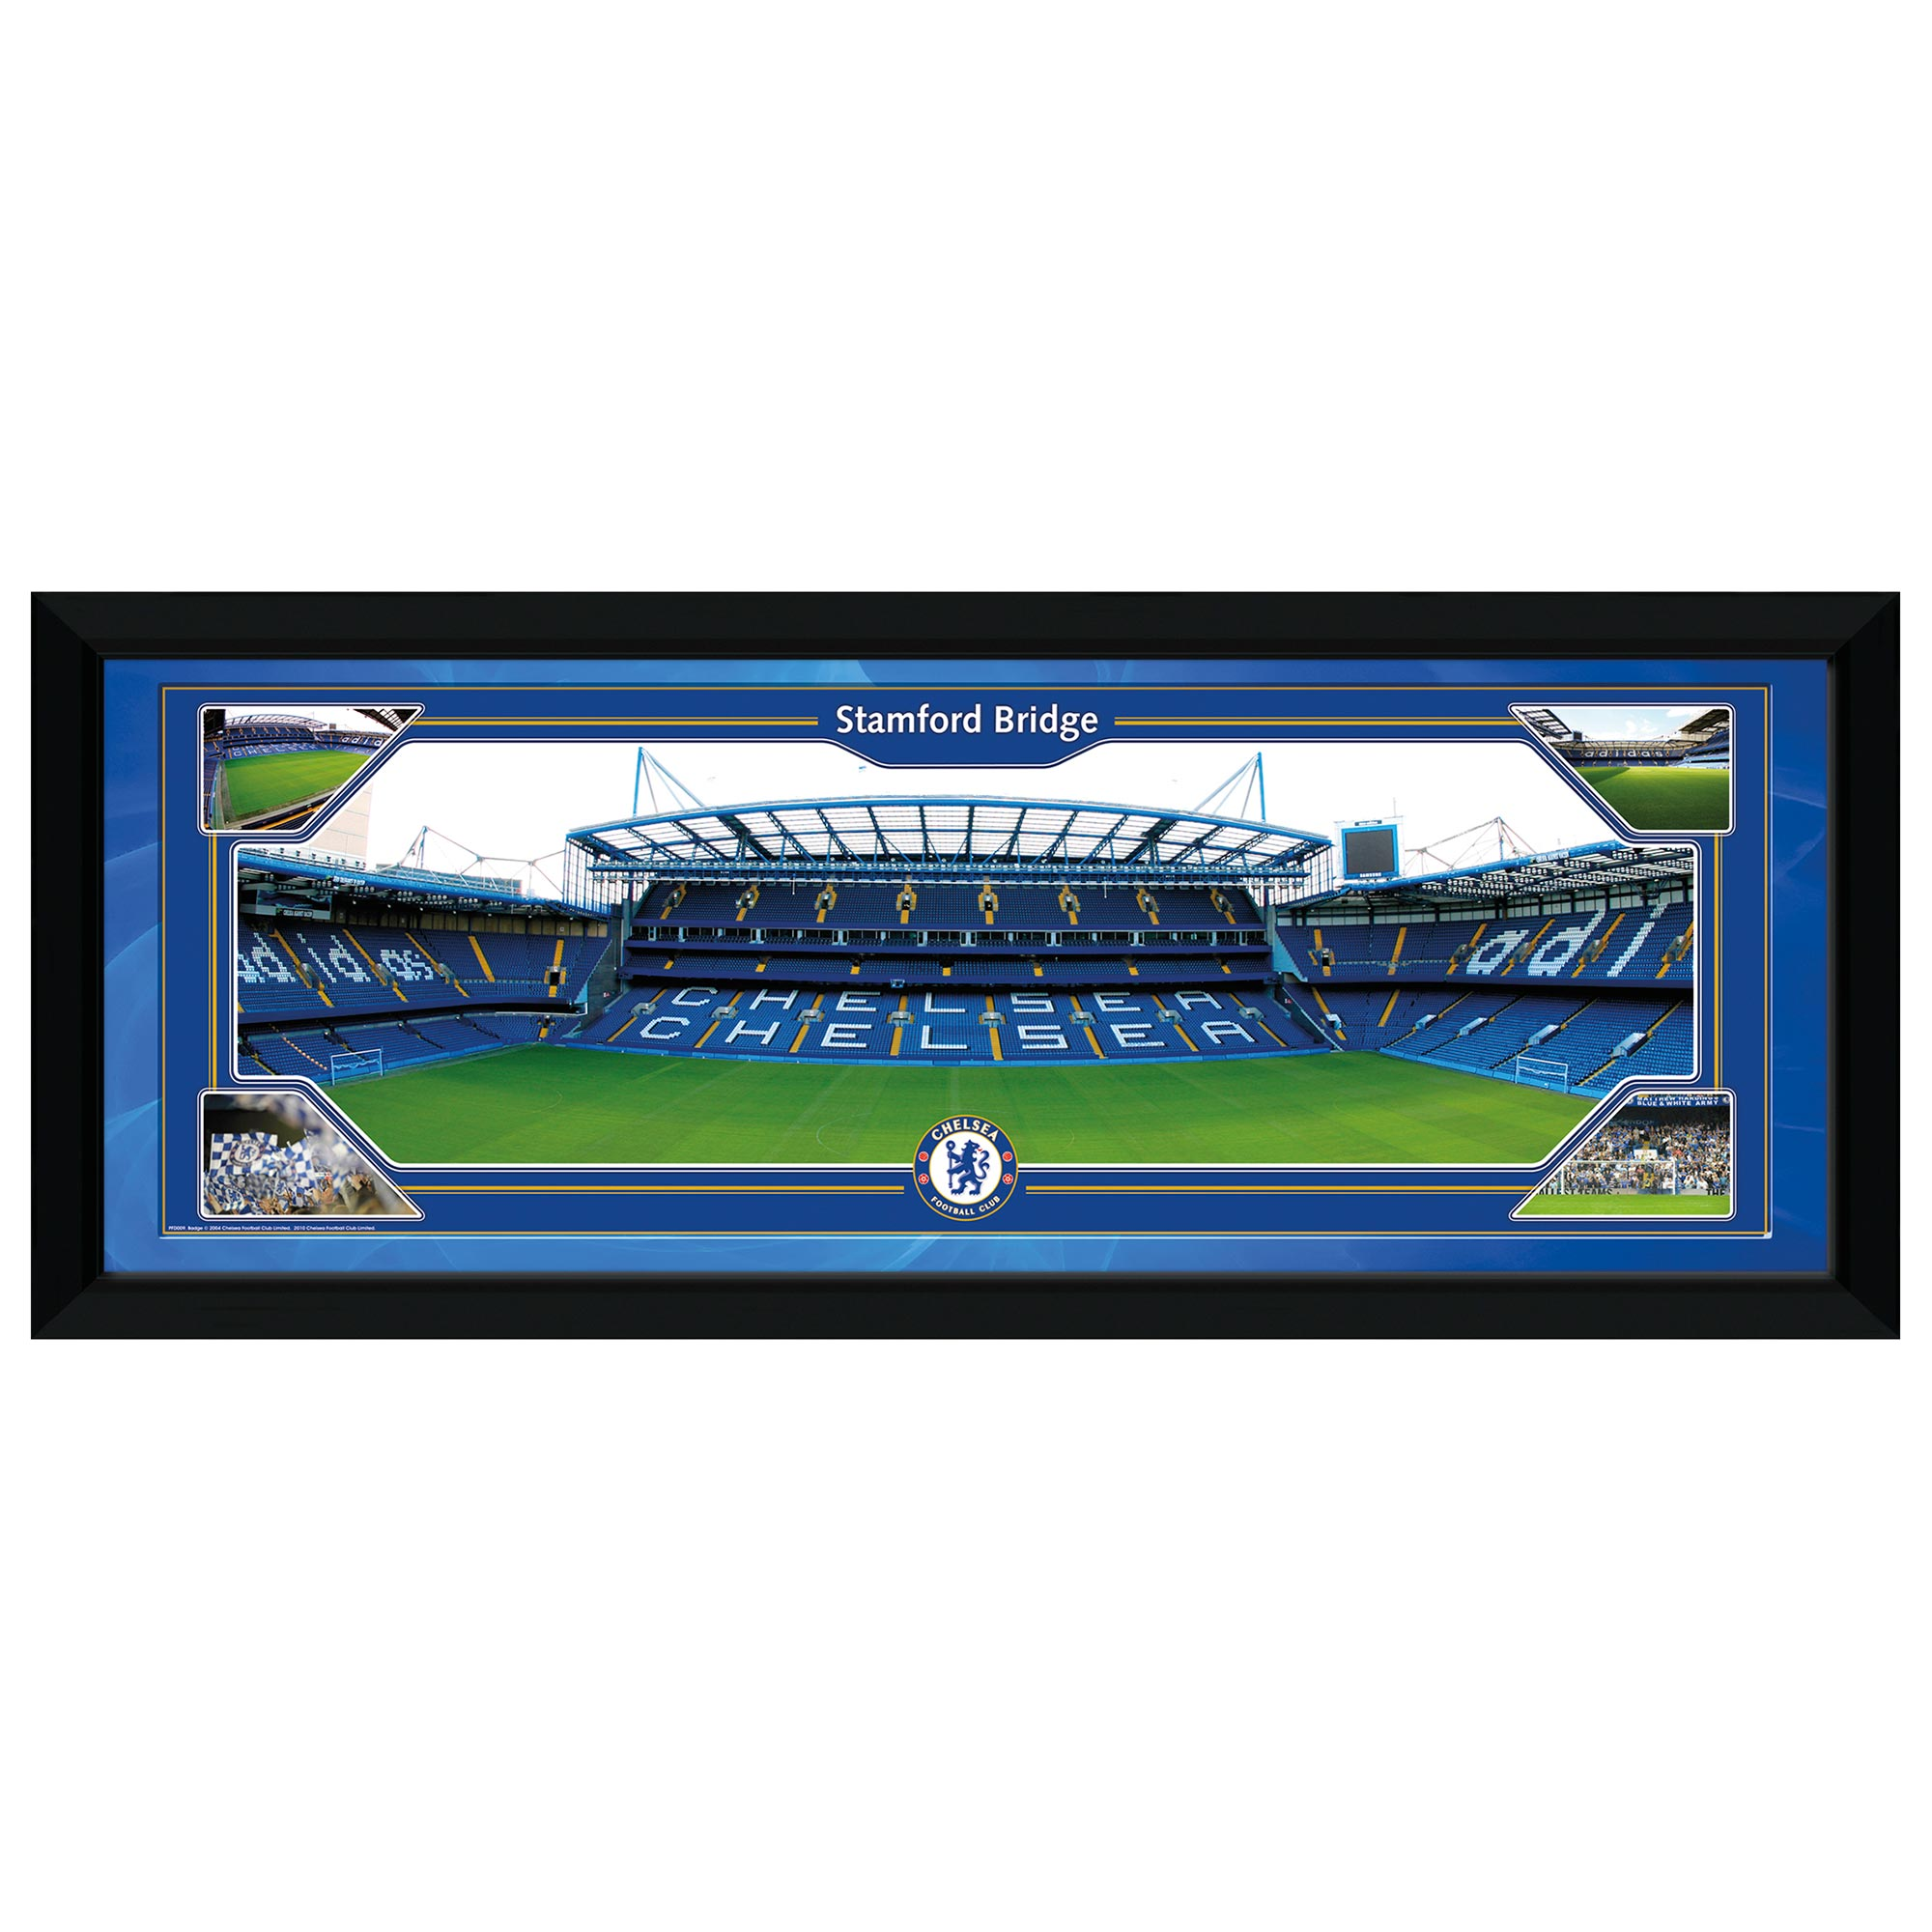 Chelsea Stamford Bridge Framed Print - 30 x 12 inches